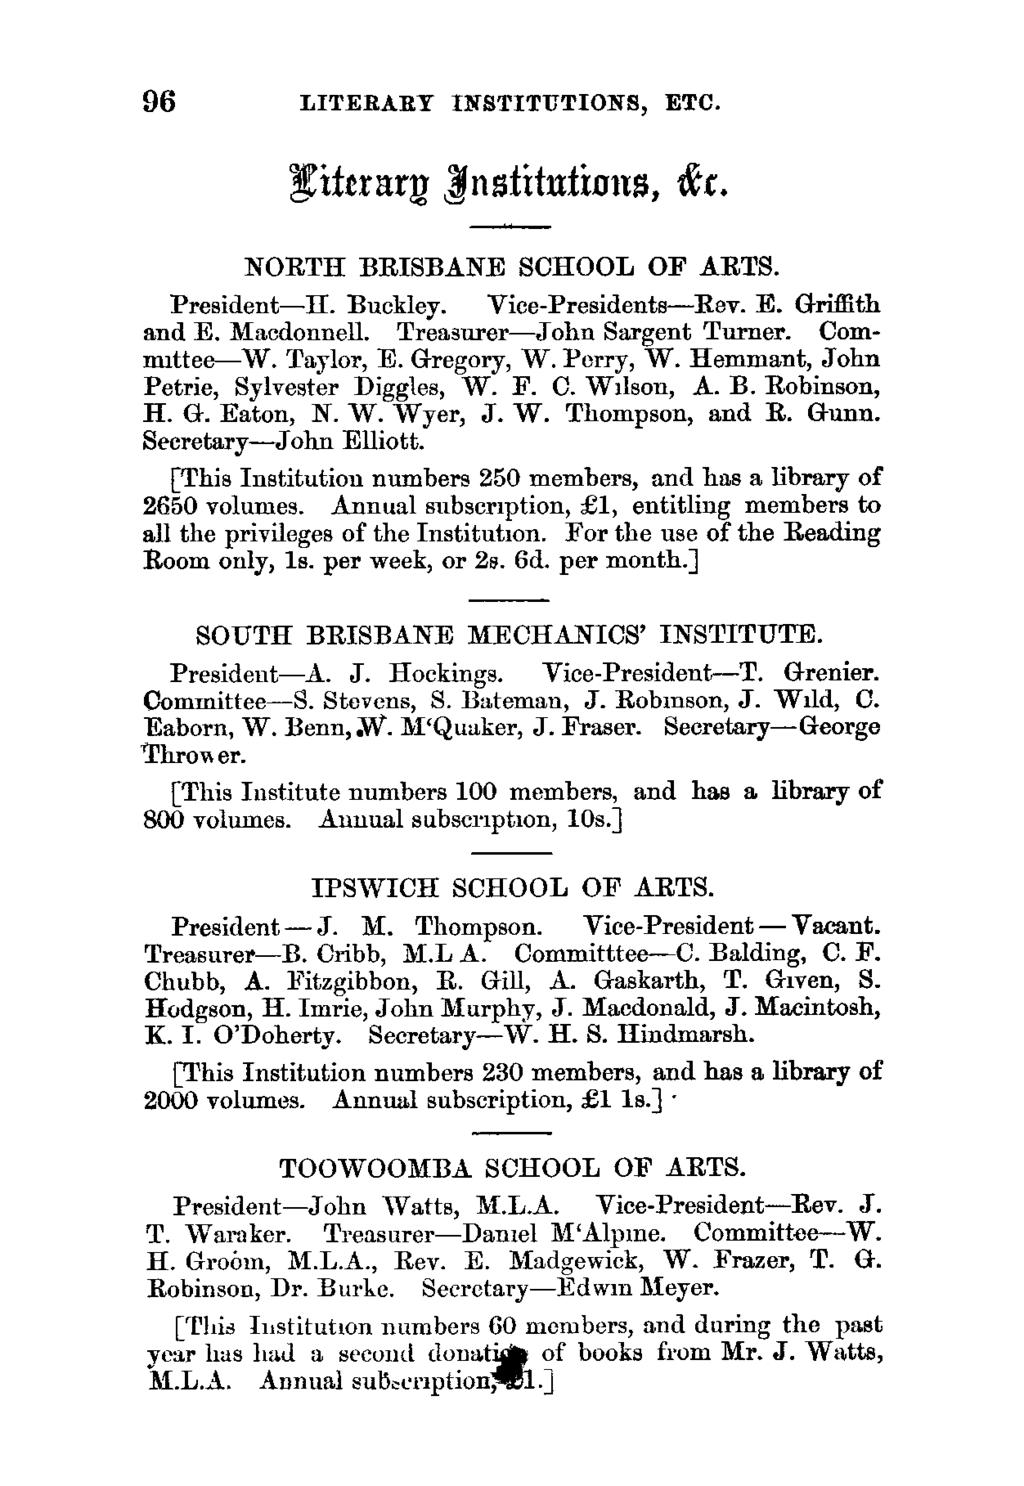 96 LITERARY INSTITUTIONS, ETC. Nittrar 'nstitutiains, tr. NORTH BRISBANE SCHOOL OF ARTS. President-H. Buckley. Vice-Presidents-Rev. E. Griffith and E. Macdonnell. Treasurer-John Sargent Turner.